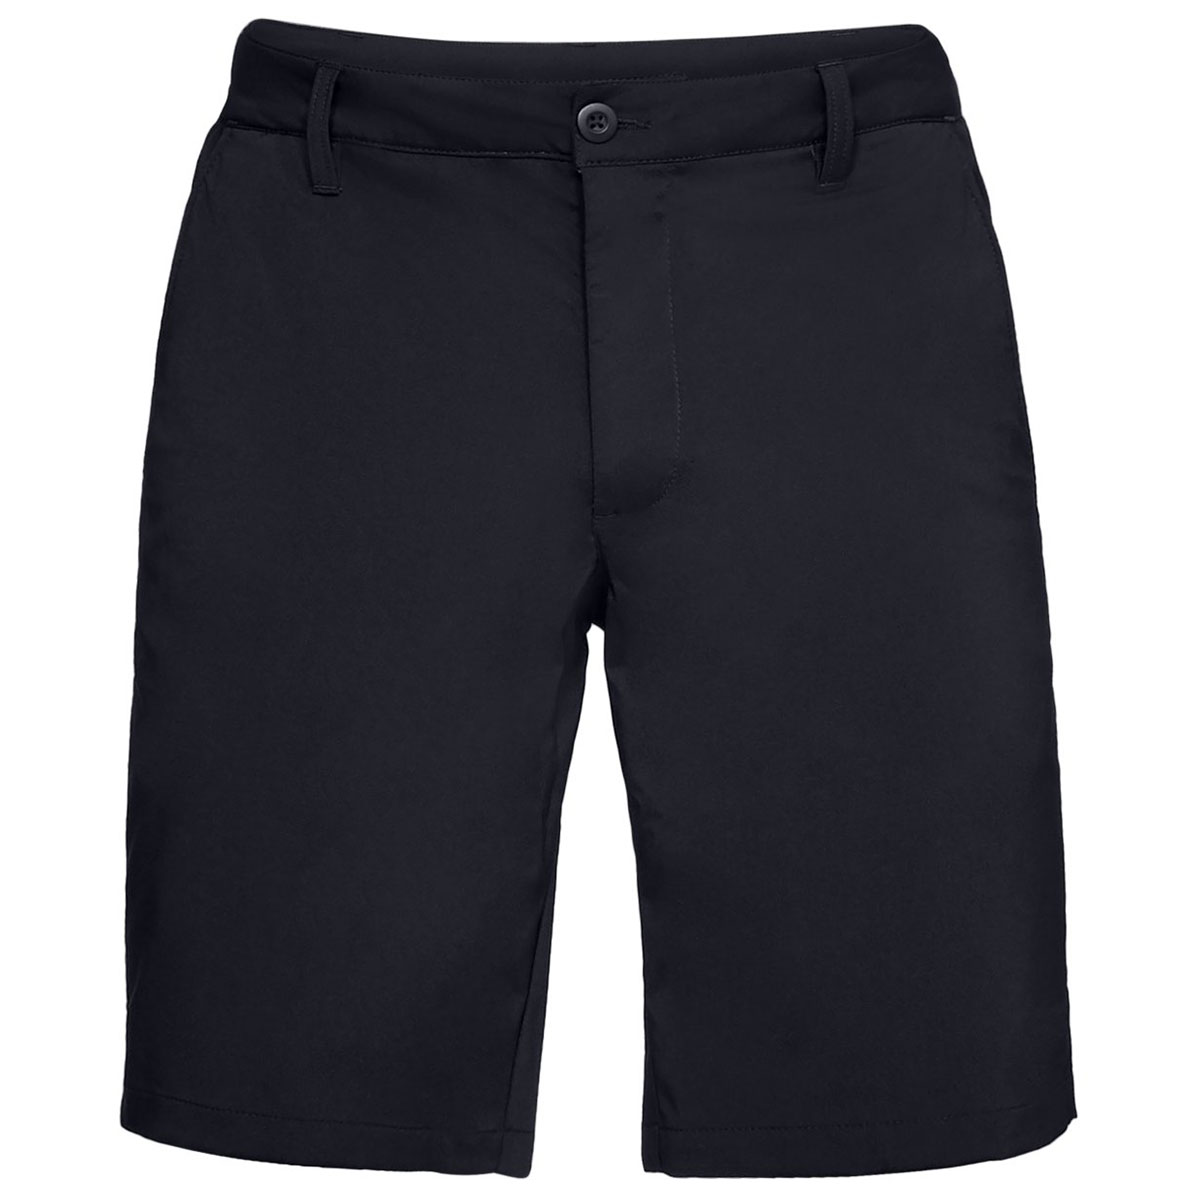 Under-Armour-Mens-EU-Tech-Stretch-Soft-Fitted-Golf-Shorts Indexbild 4